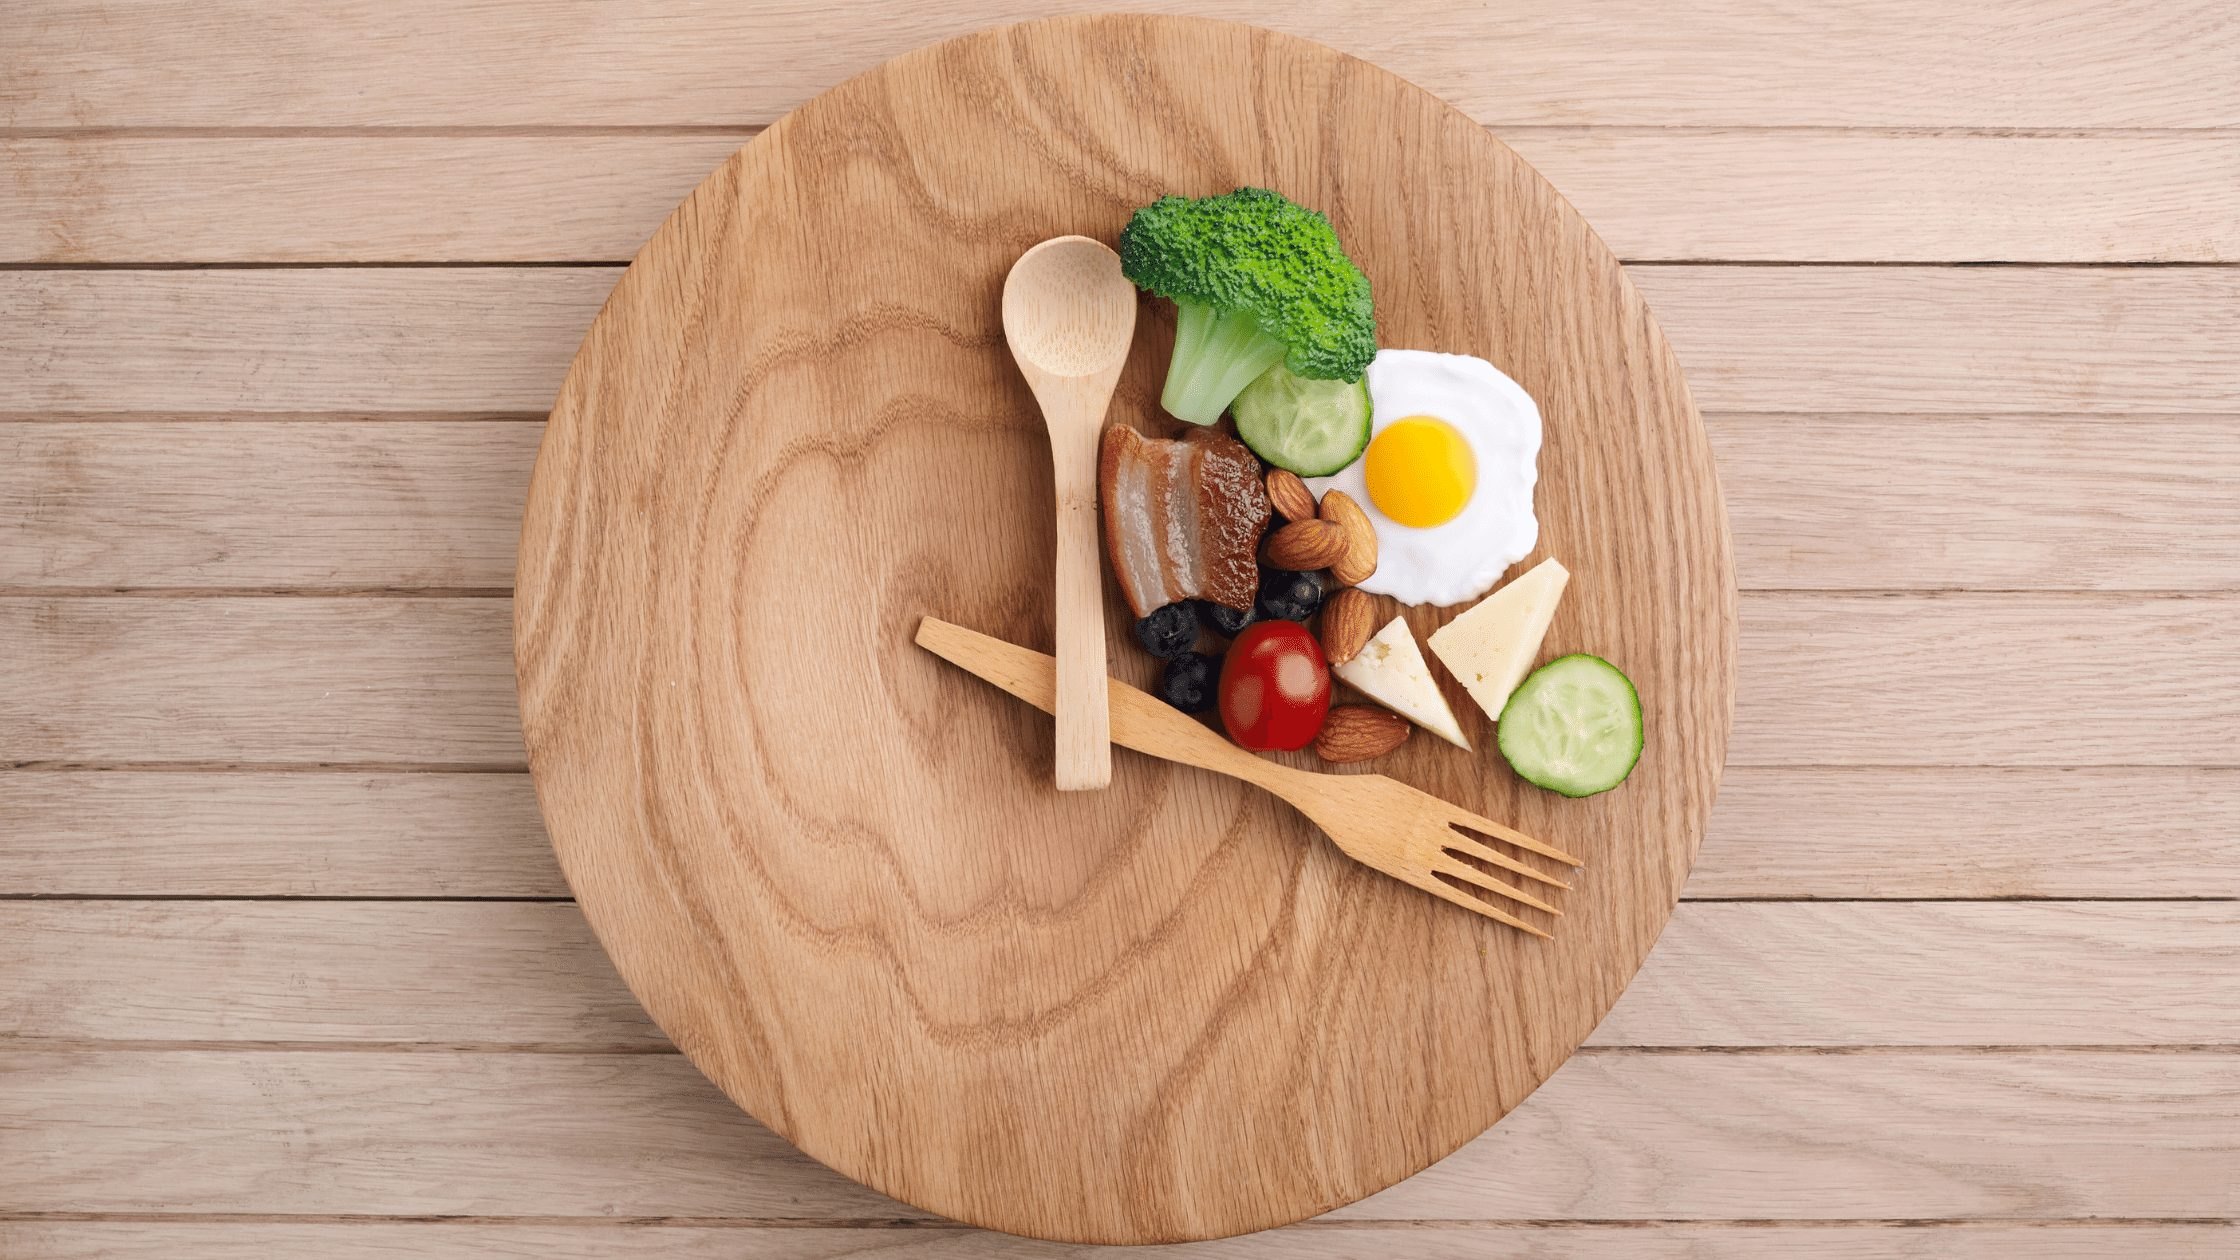 Symbolizing intermittent fasting with food displayed on plate as a clock